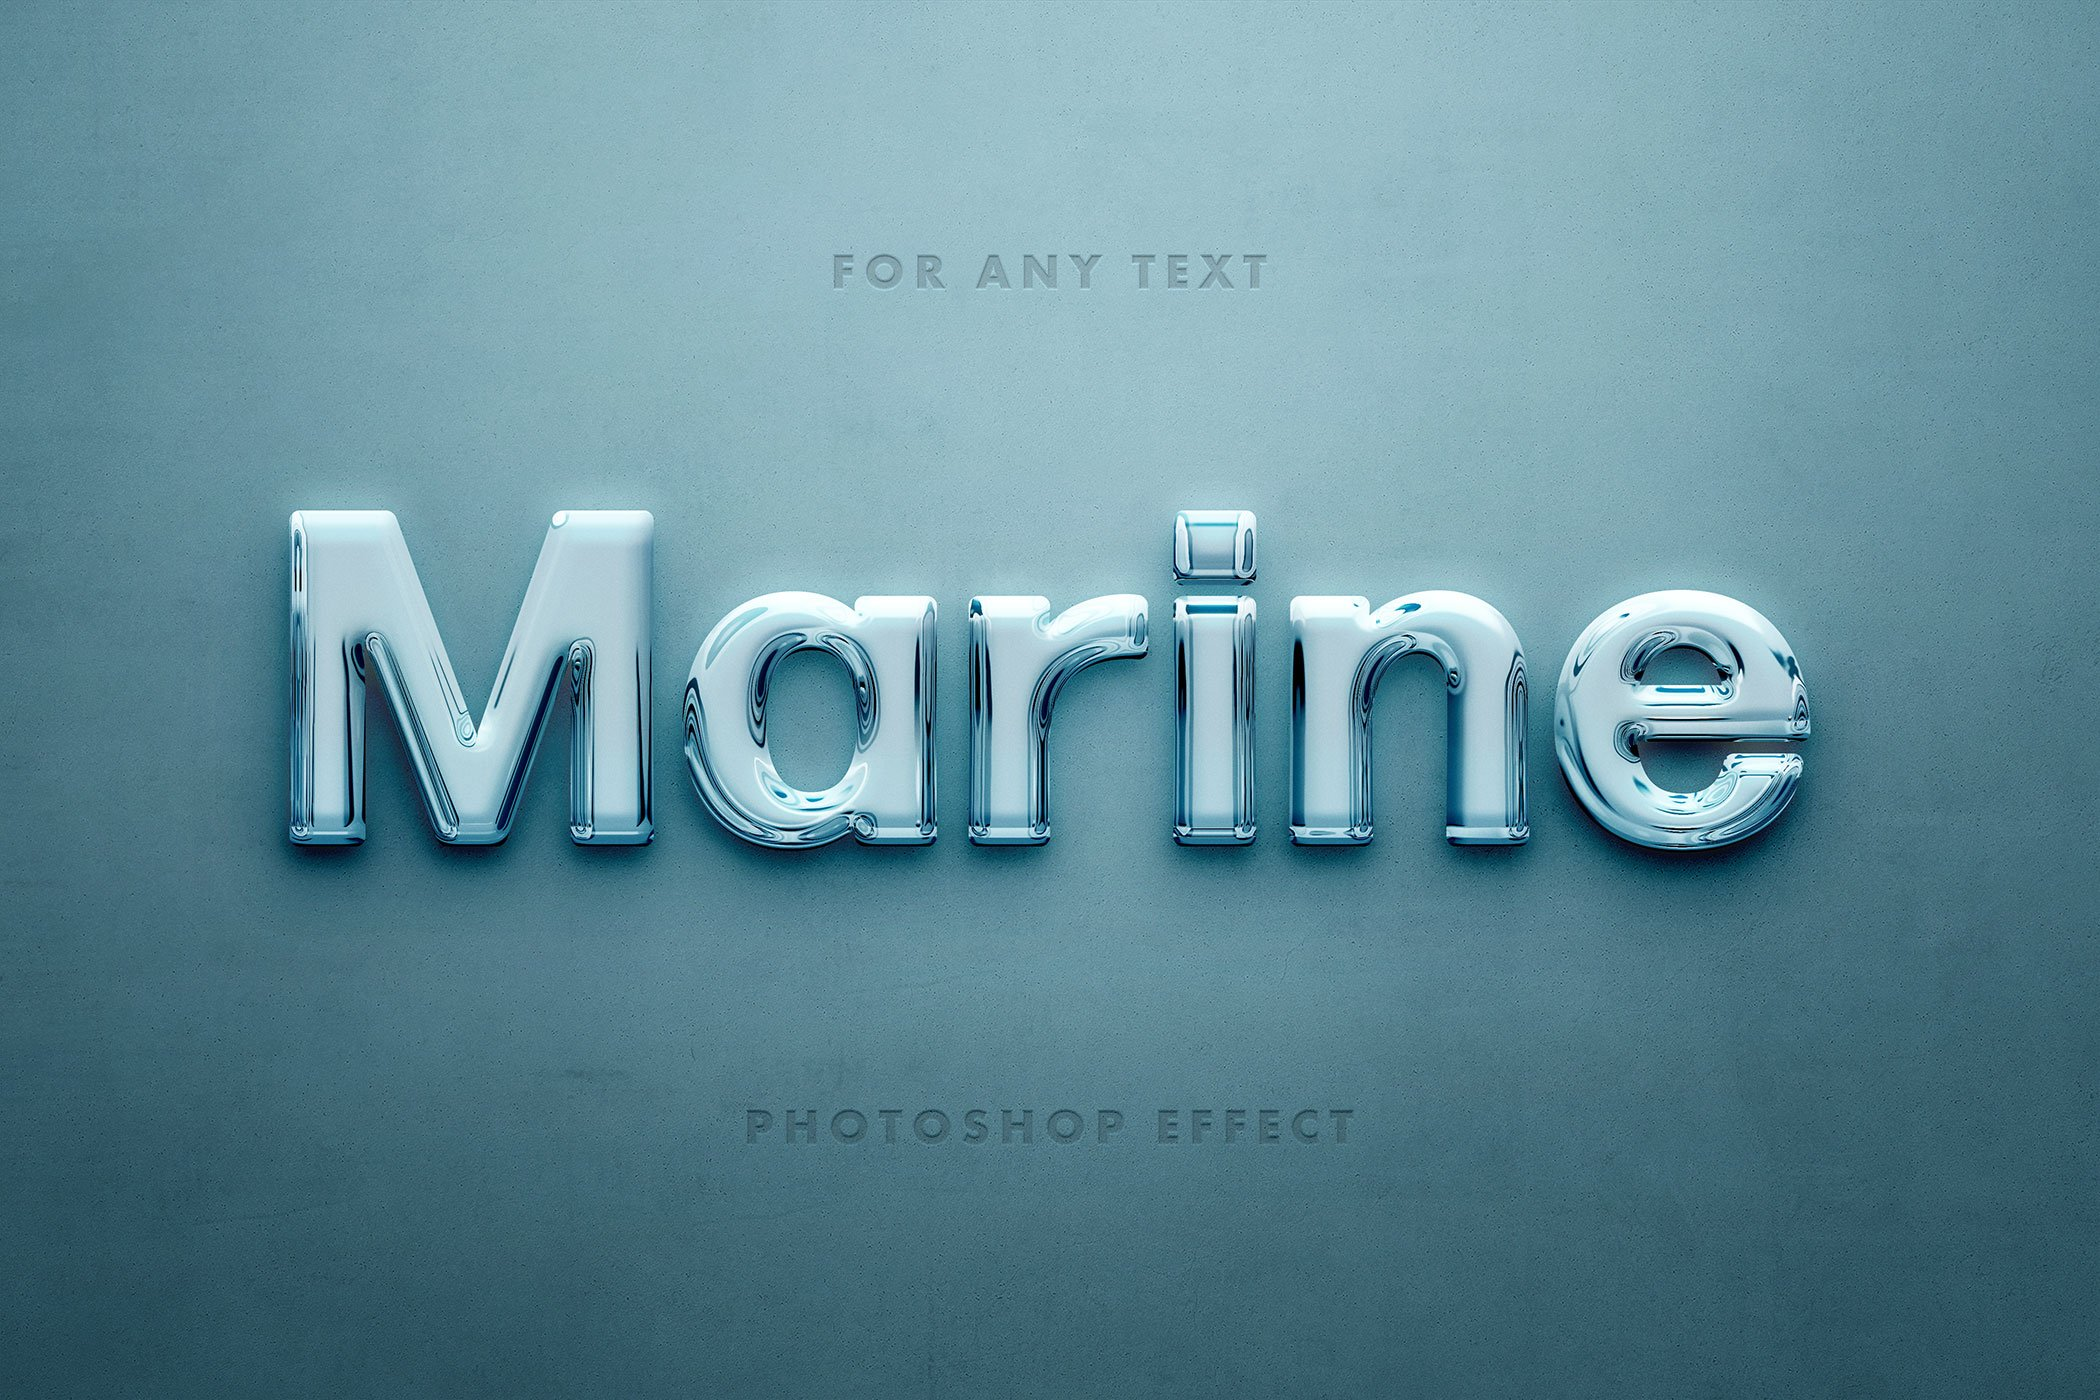 Glossy 3D Text Effects